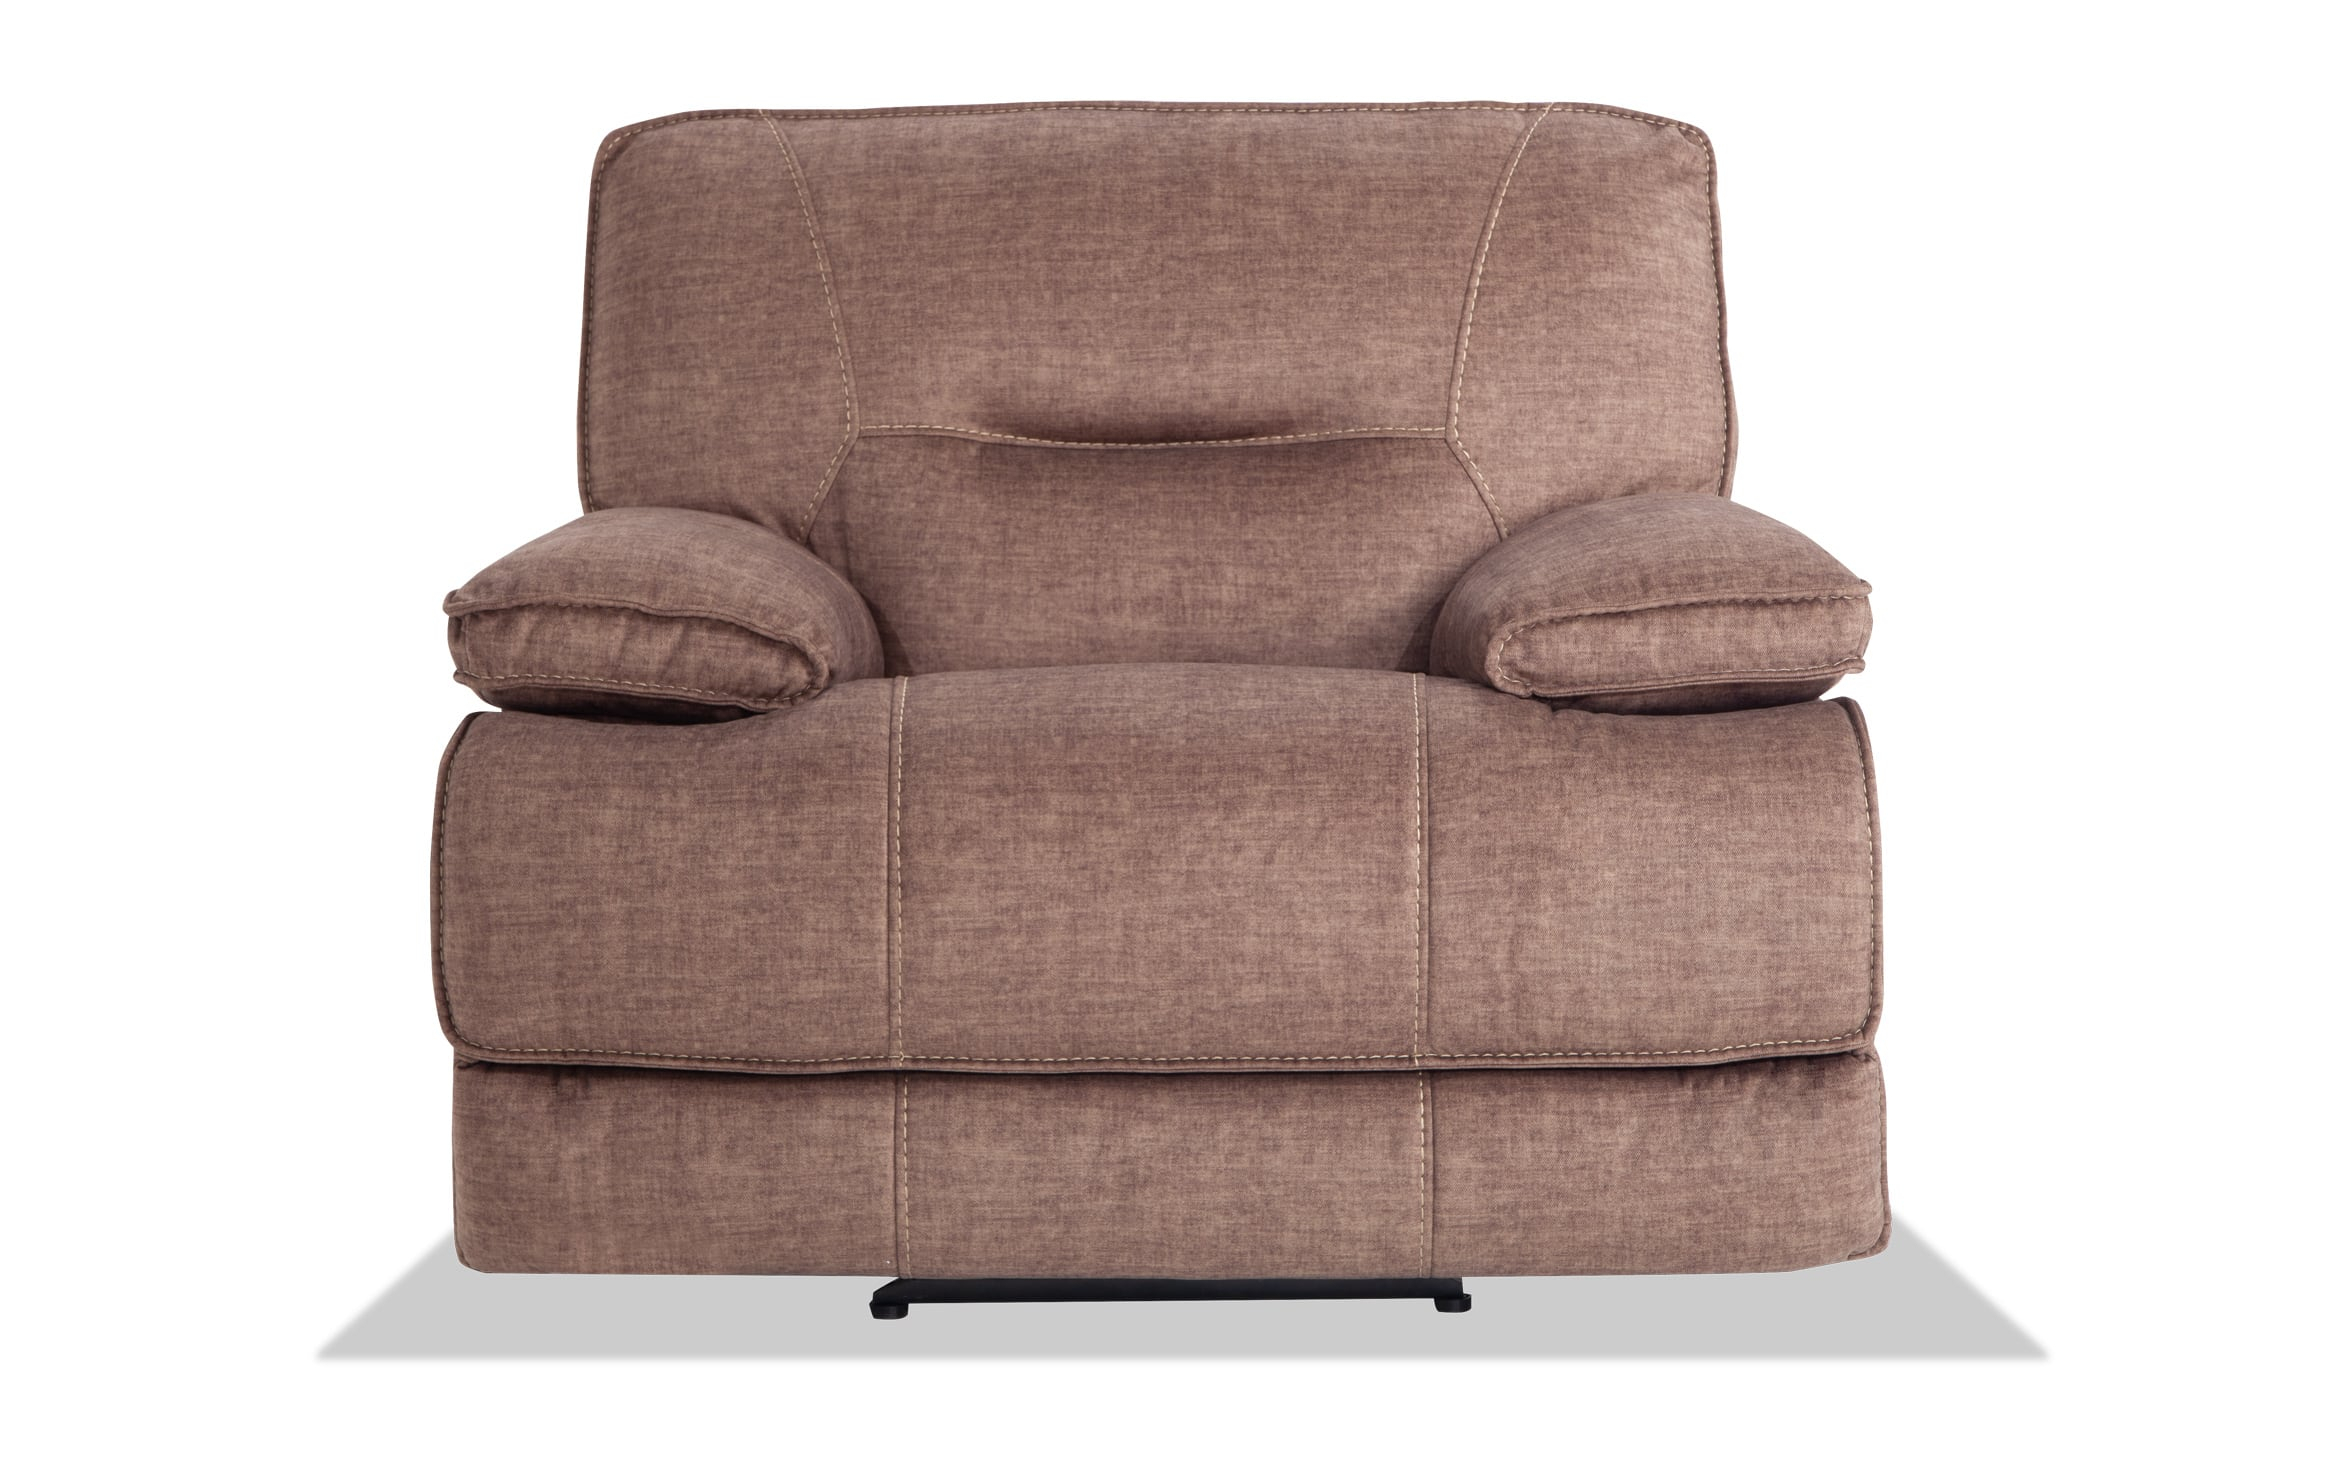 Bobs Furniture Pacifica – Home Ideas And More Regarding Pacifica Gray Power Reclining Sofas (View 14 of 15)